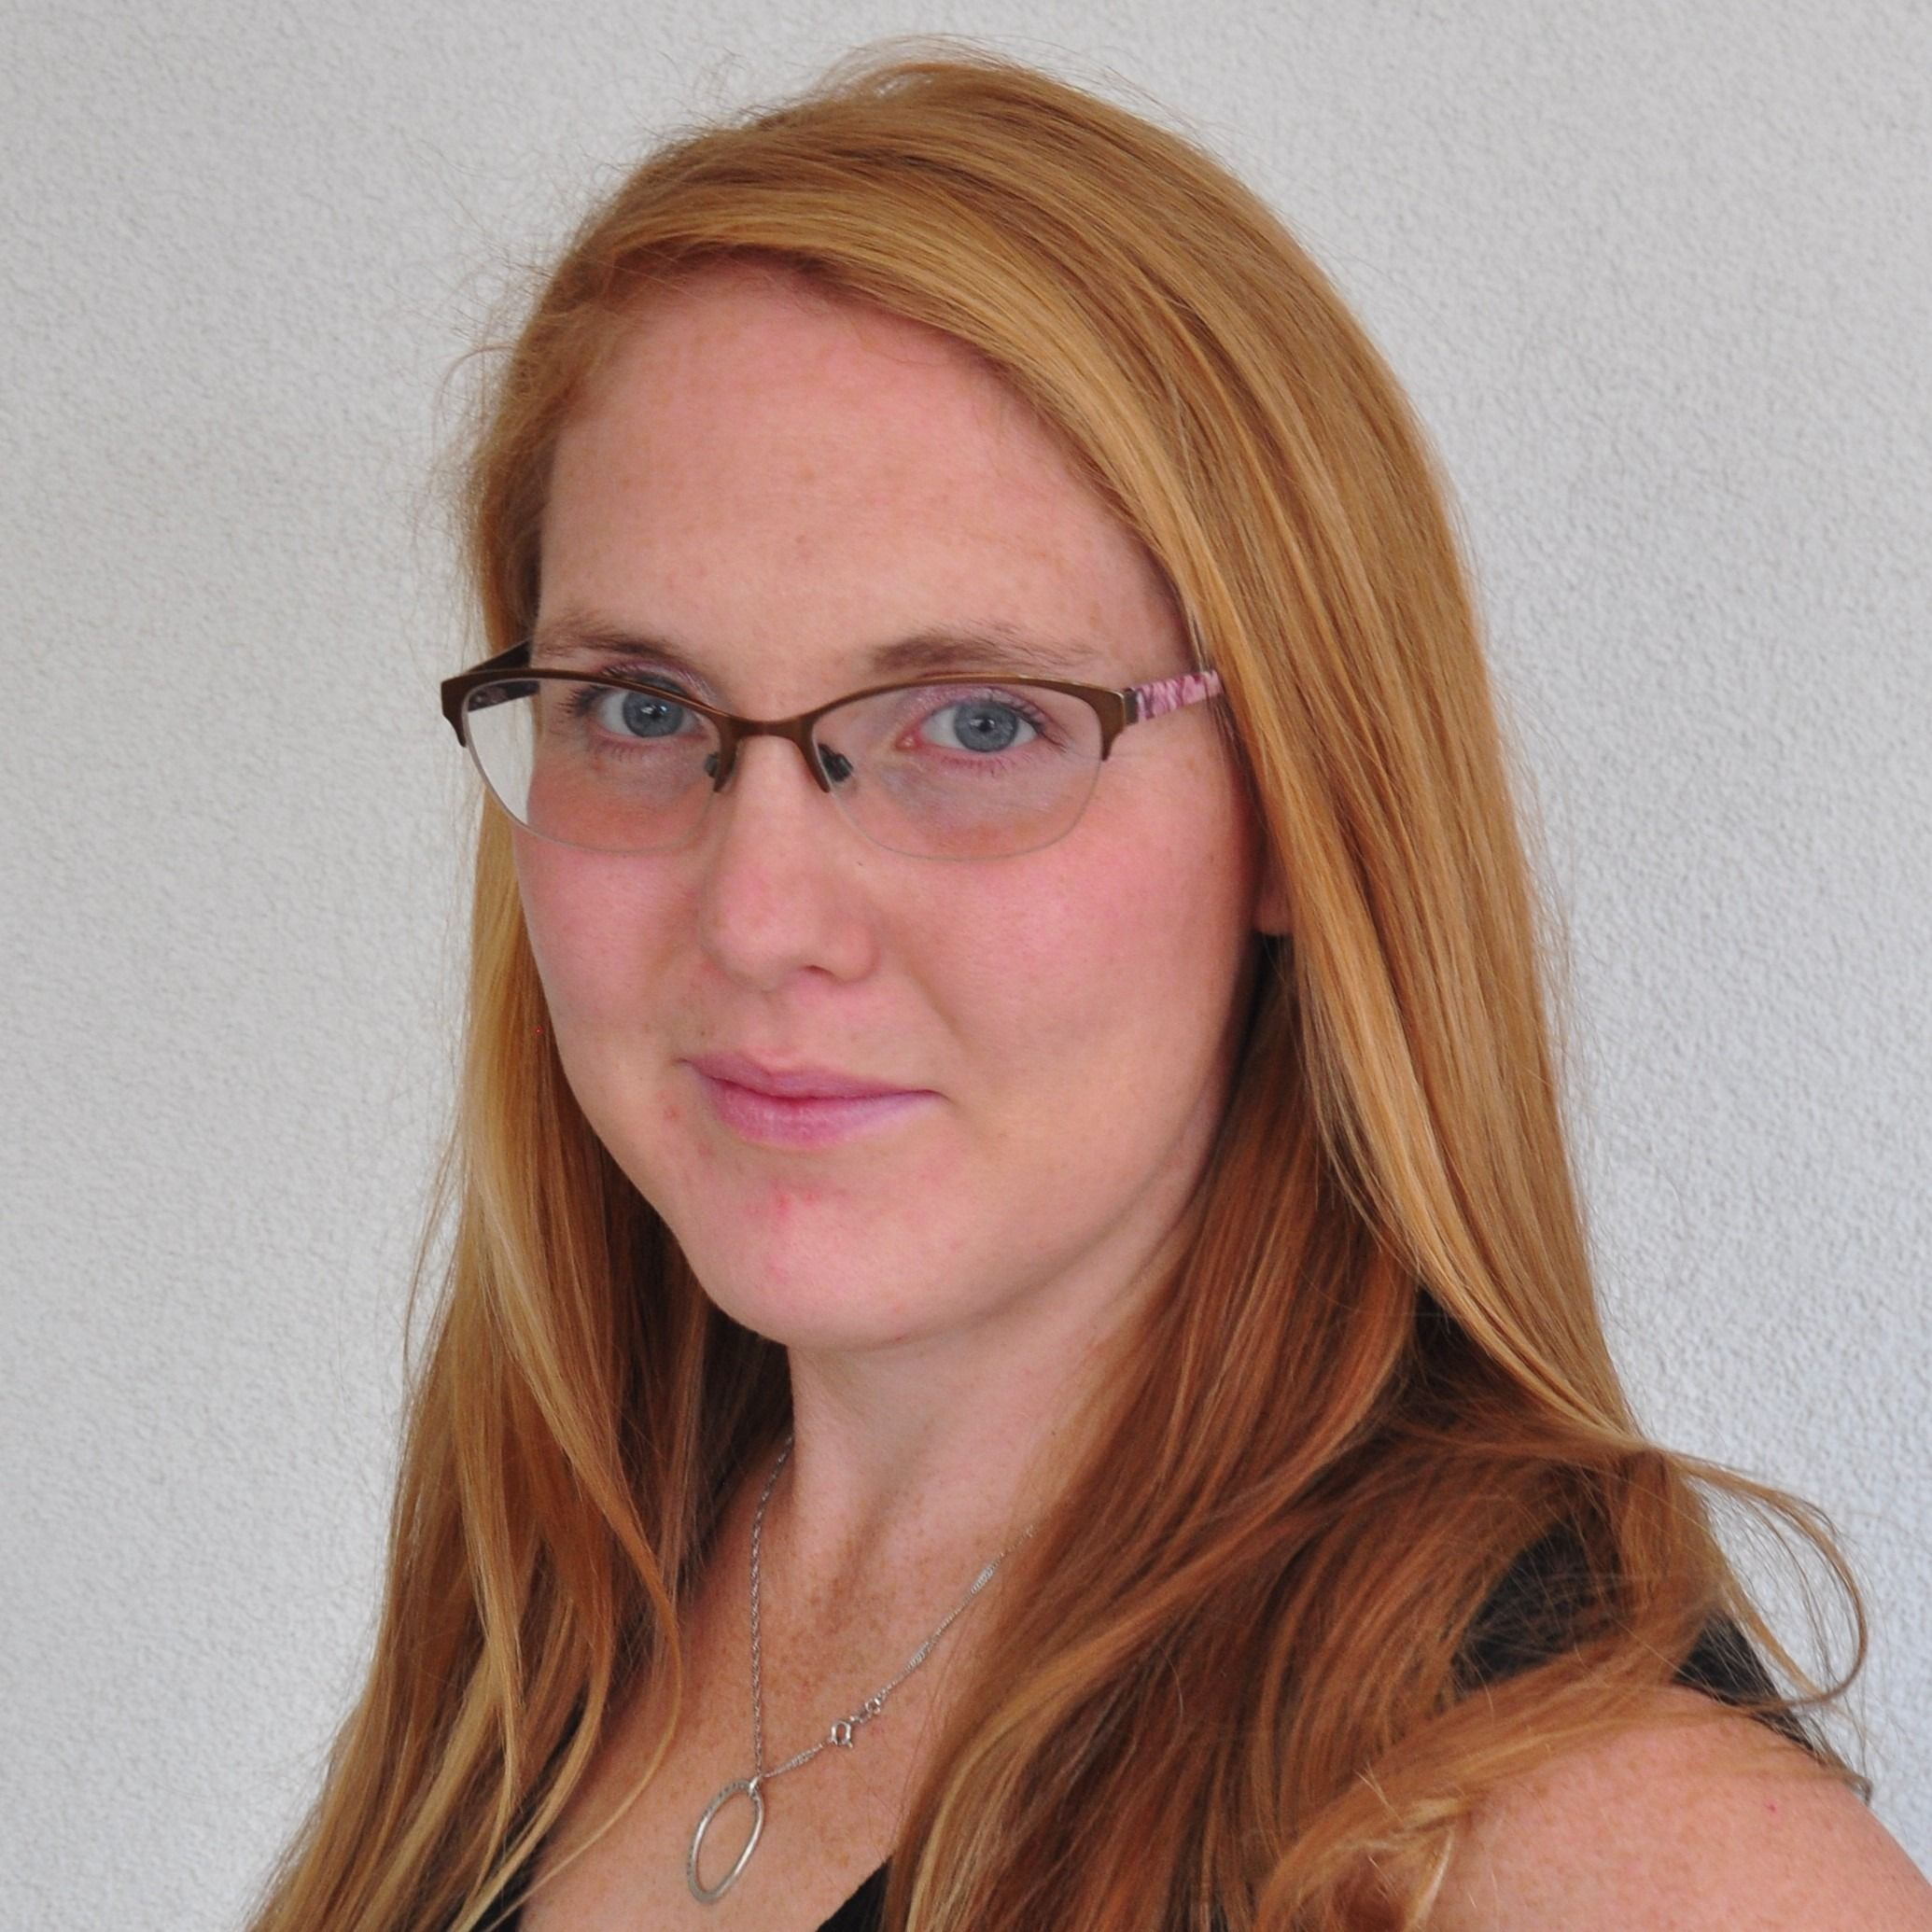 What does a Project Manager do with Emily Luijbregts